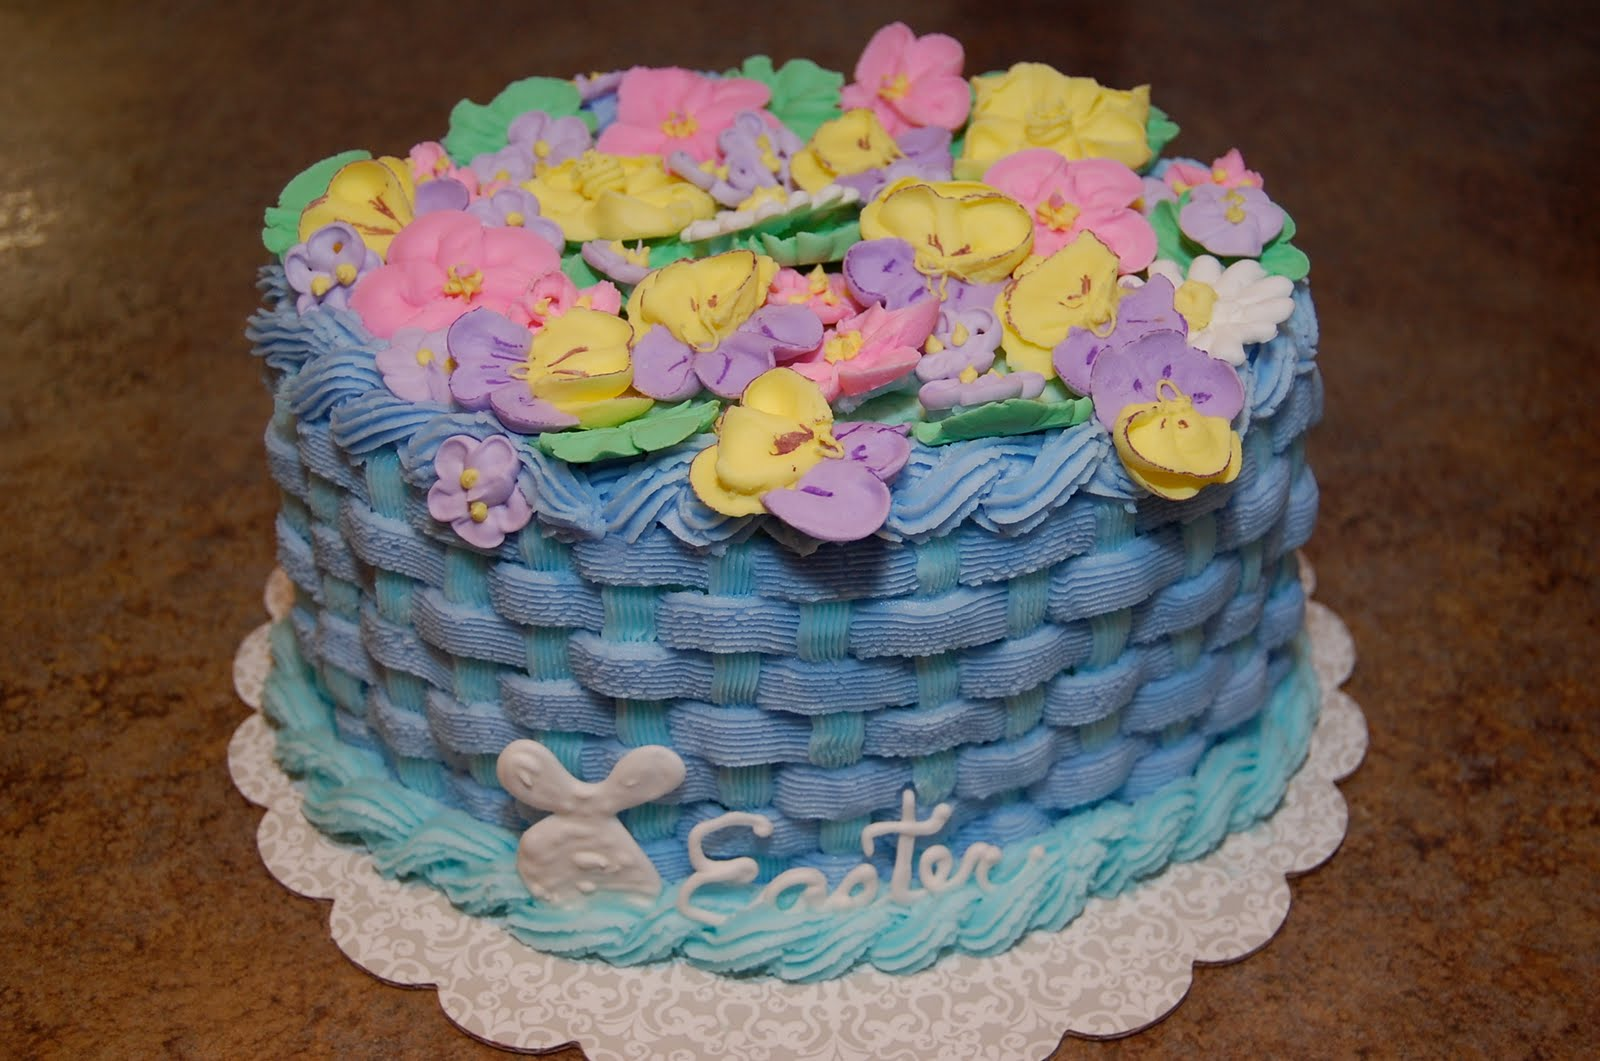 Every Pot and Pan: Wilton Cake Decorating: Course 2